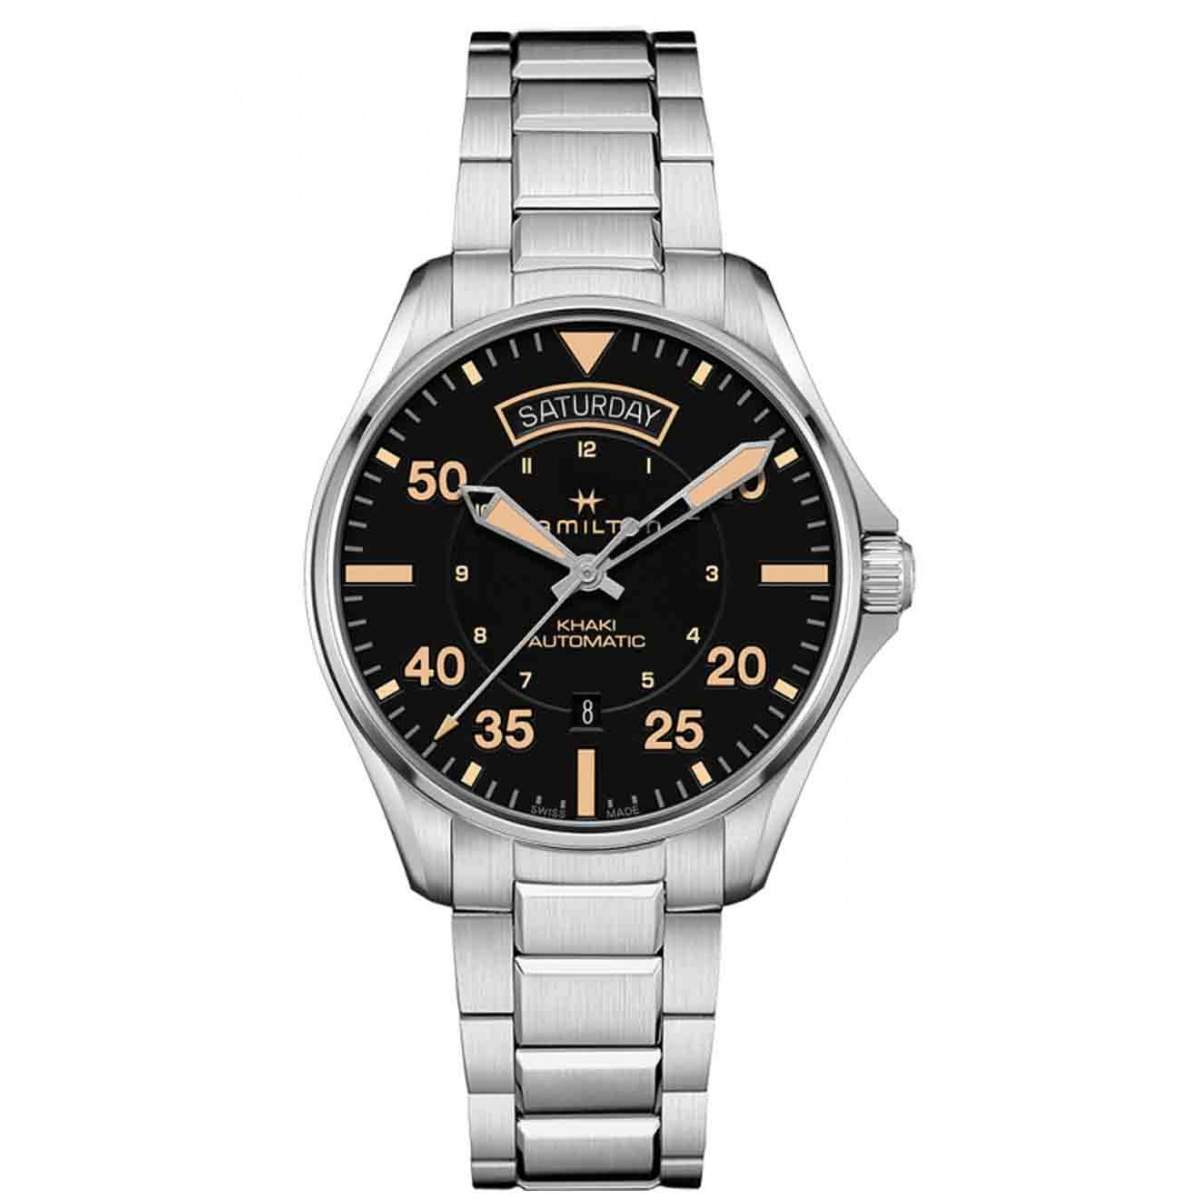 HAMILTON KHAKI AVIATION DAY DATE AUTO - 100 M - ∅42 mm, Esfera negra, brazalete de acero